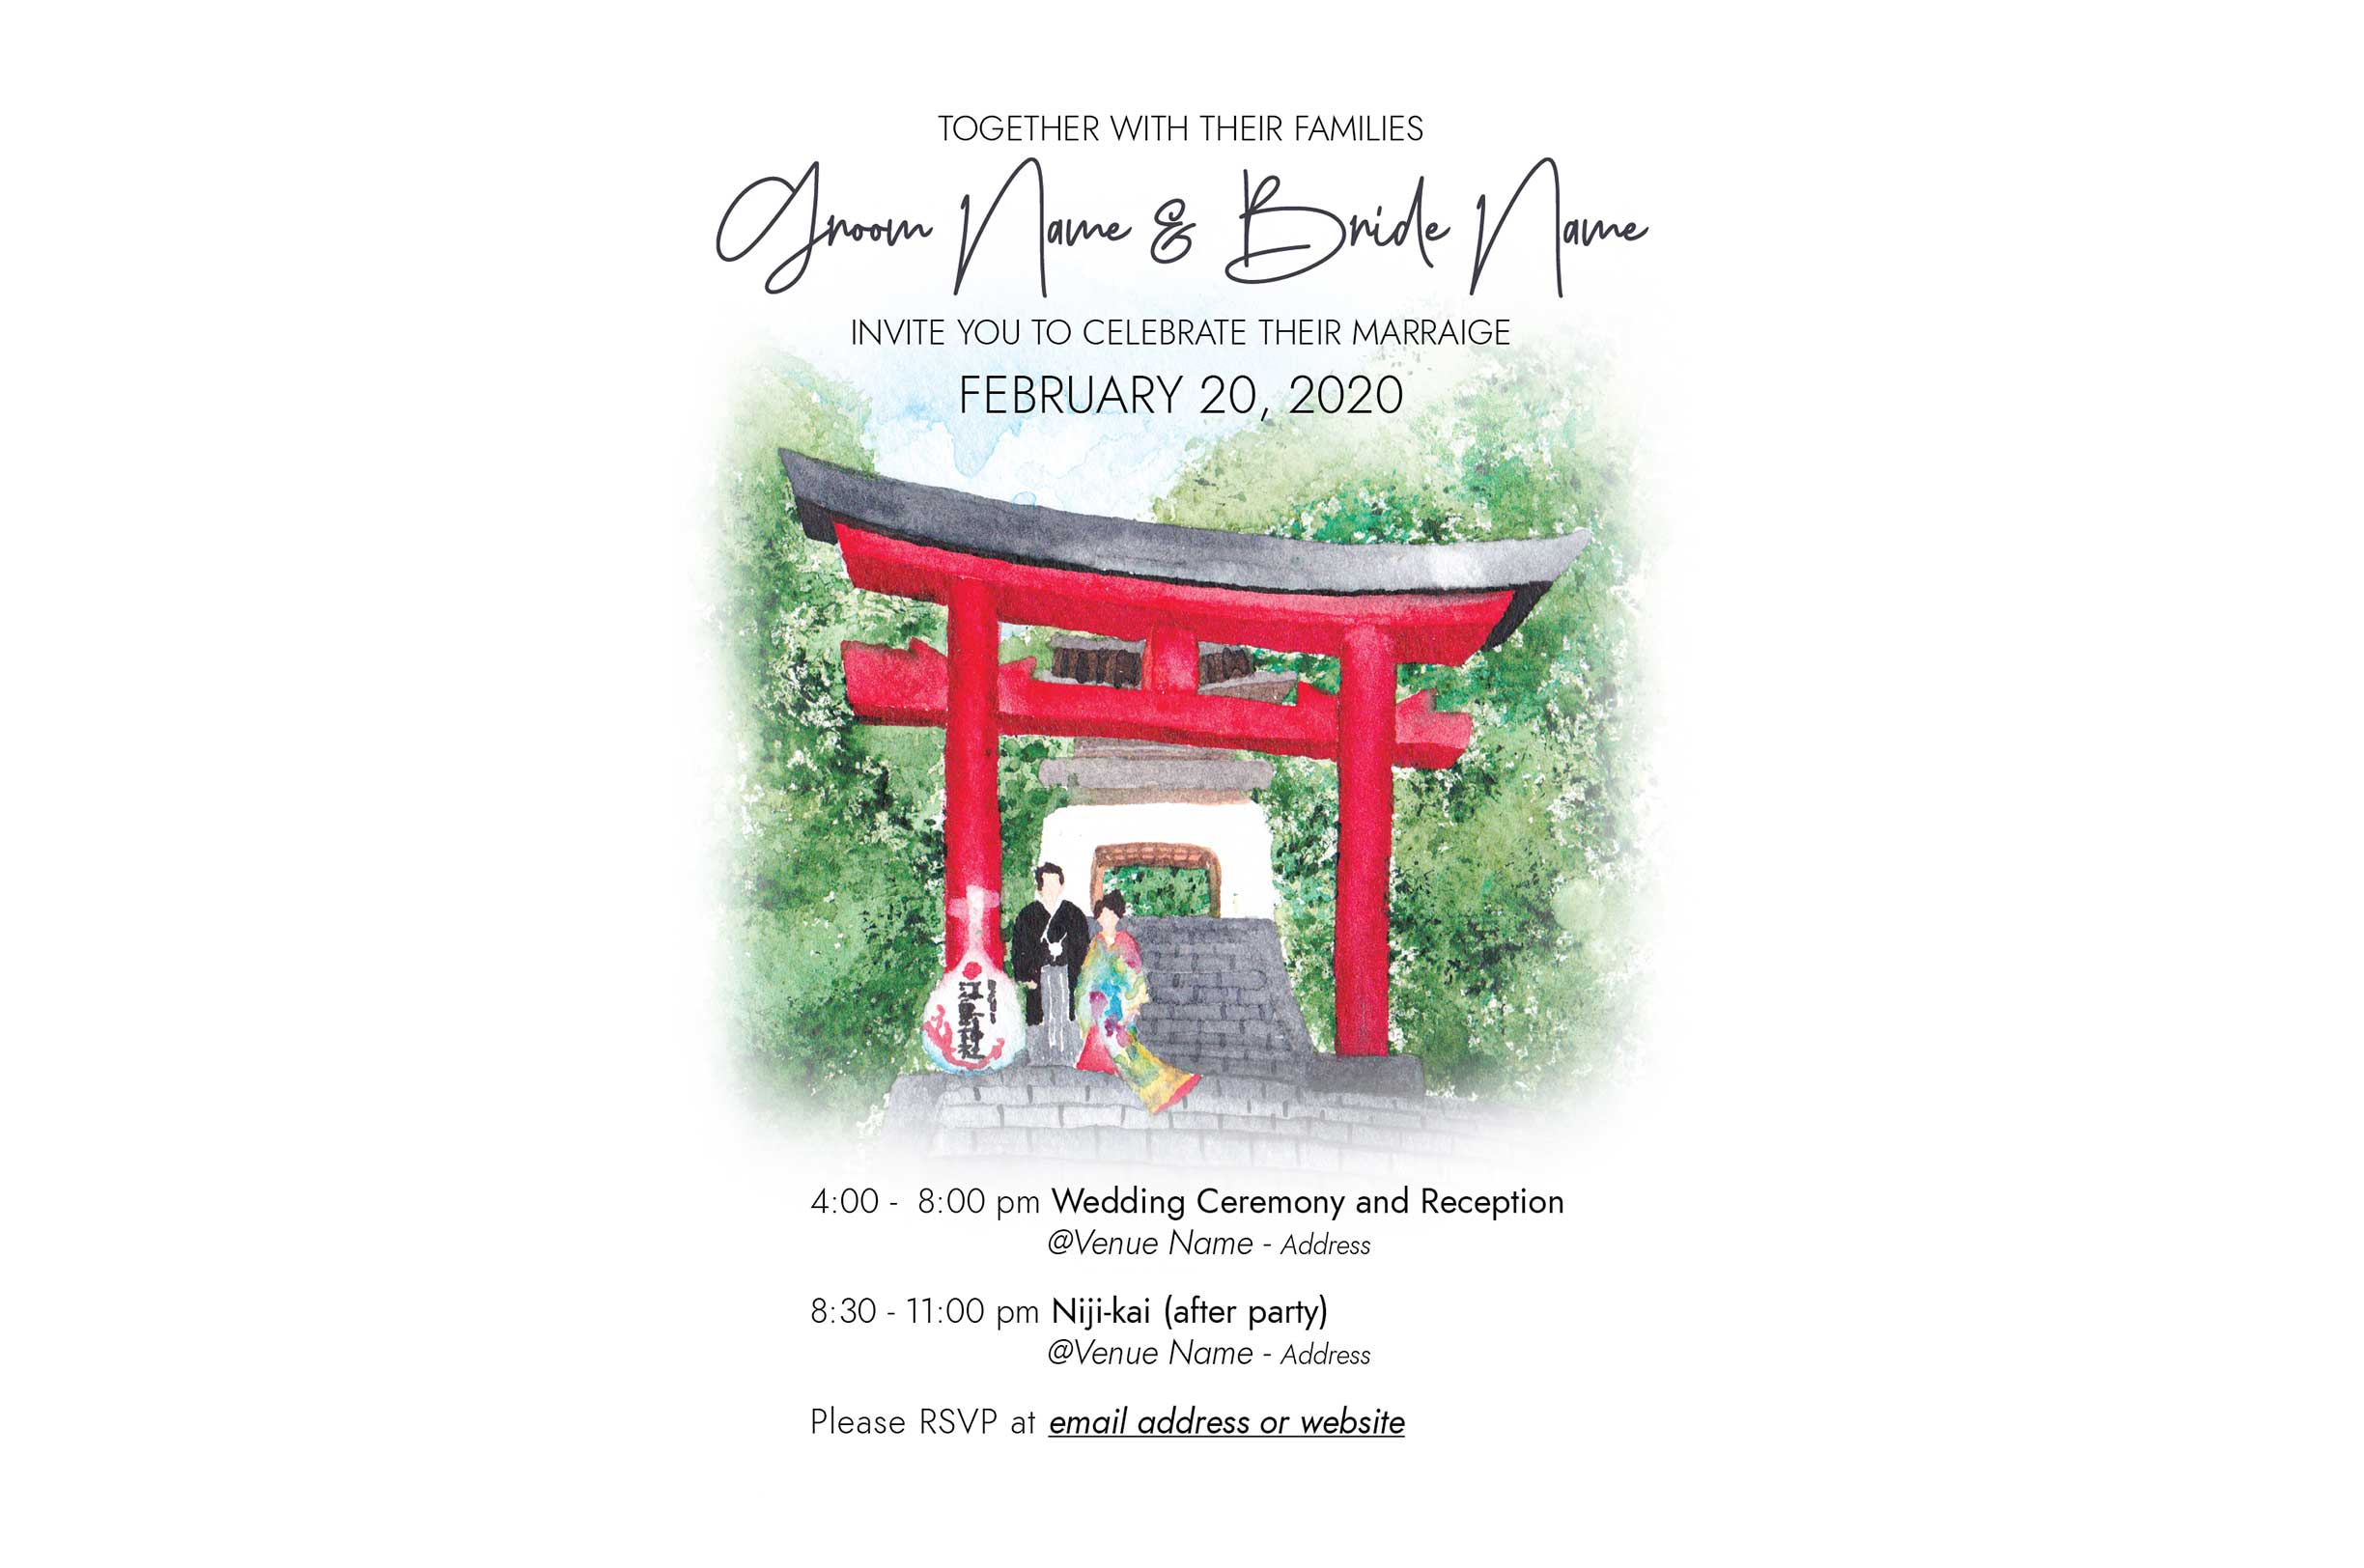 Enoshima Wedding Invitation